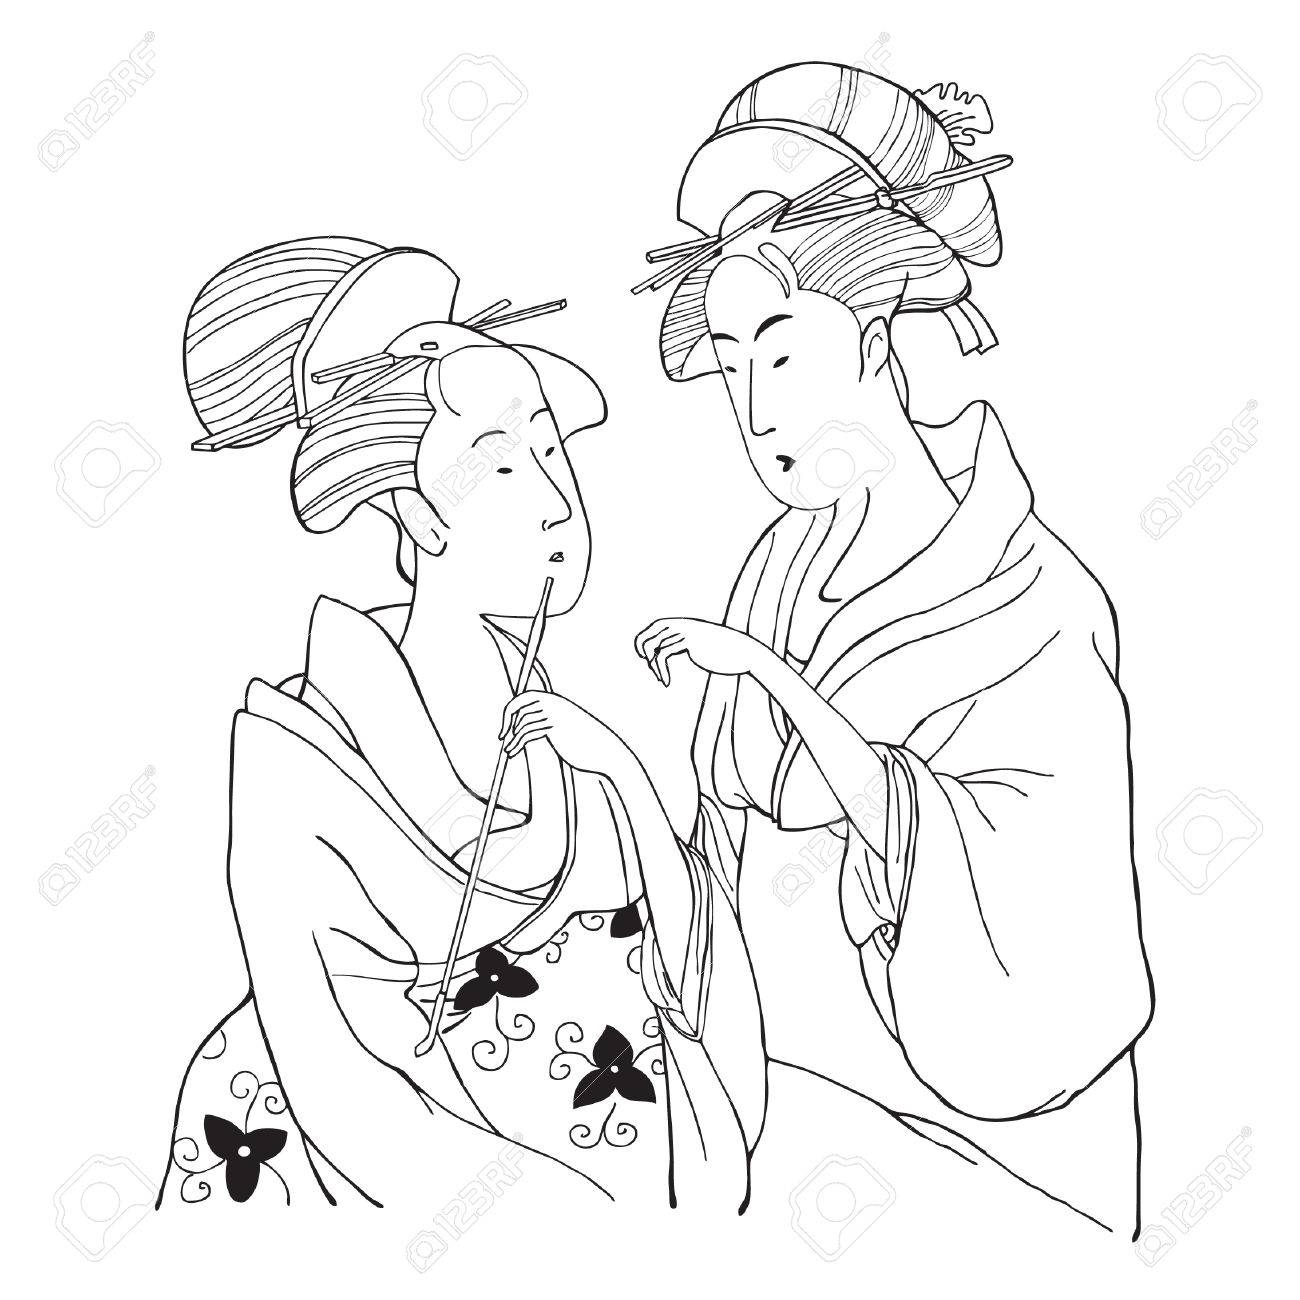 1300x1300 Two Japanese Girls. Illustration Royalty Free Cliparts, Vectors